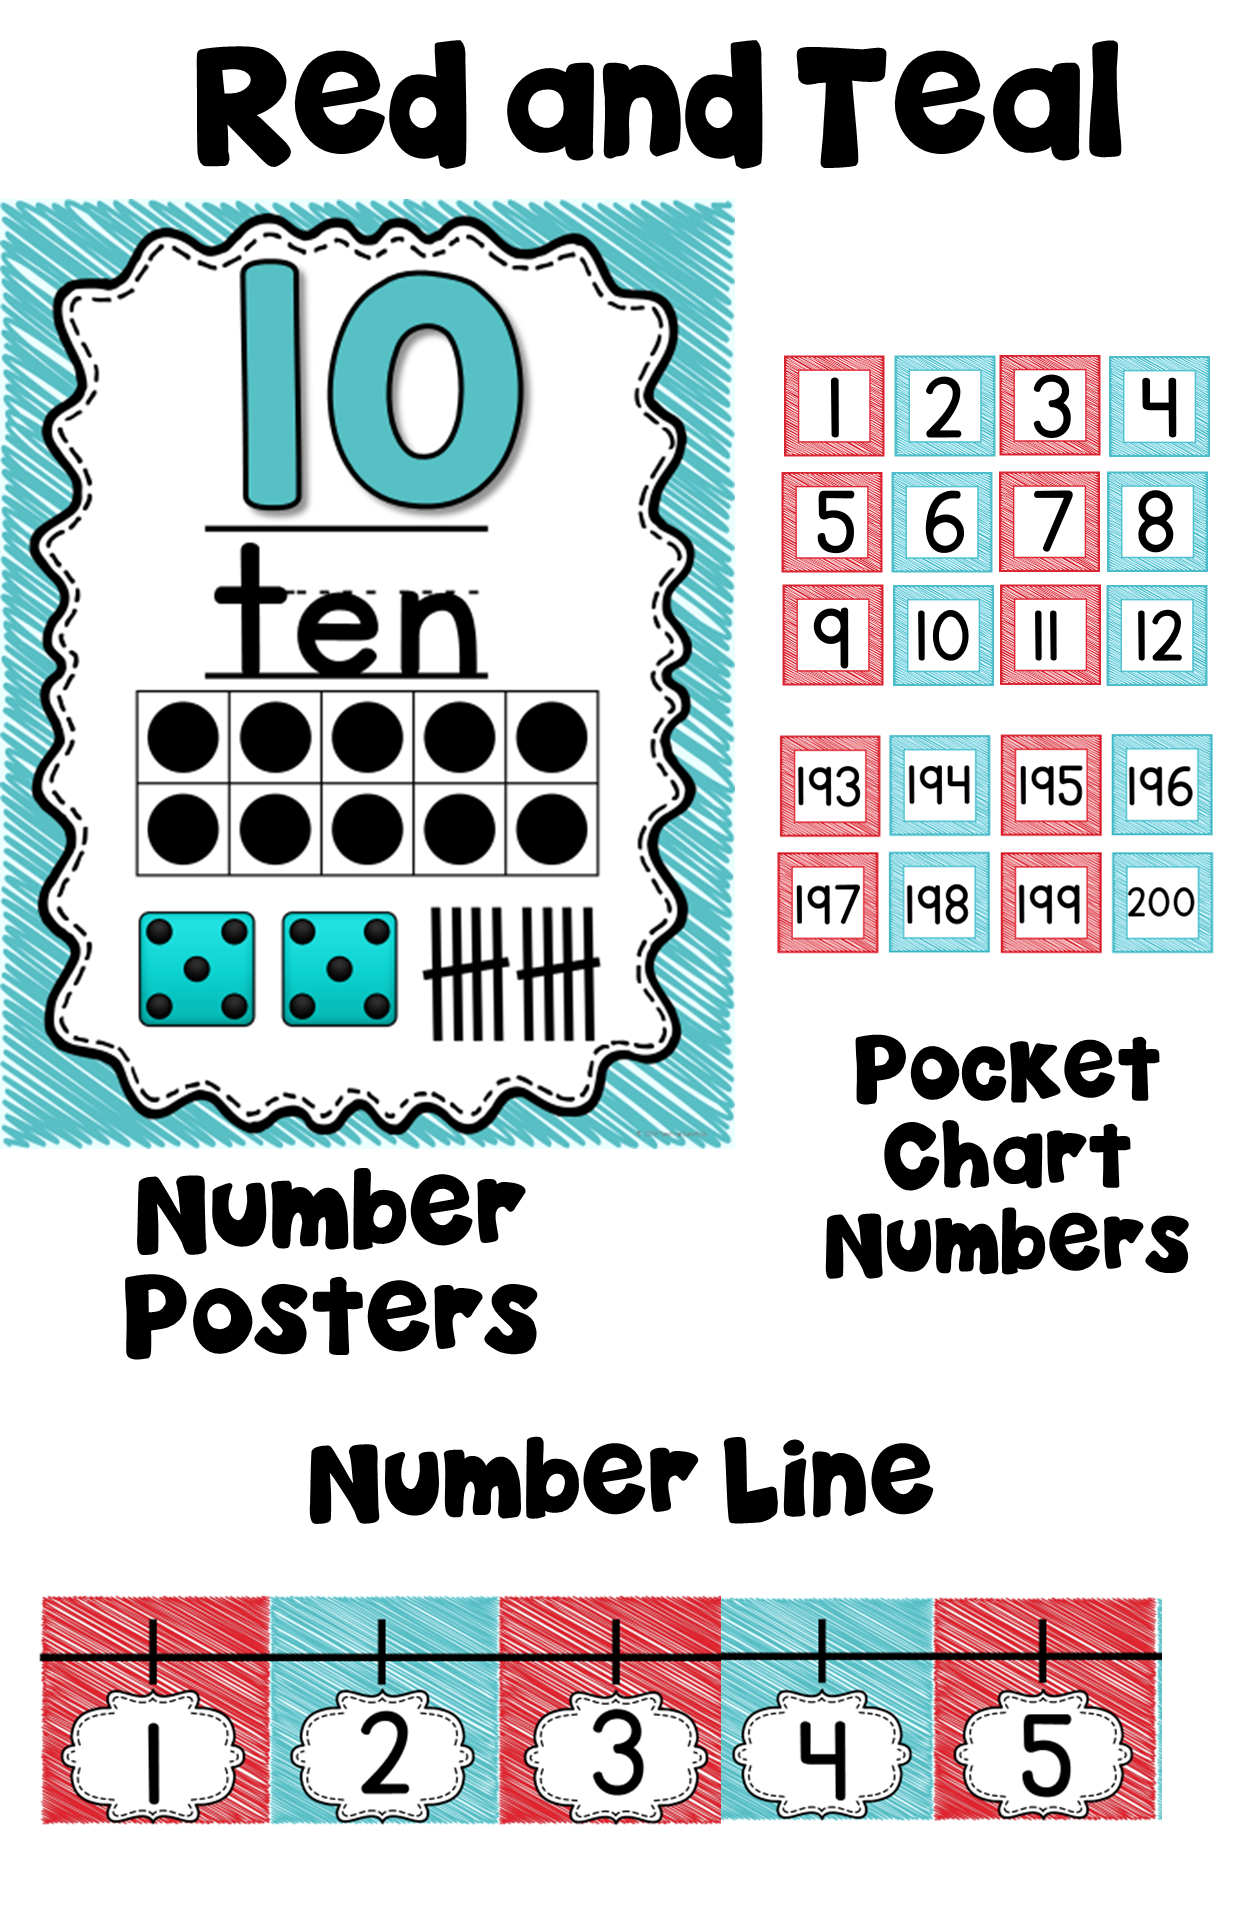 Teal and Red Number Posters with Number Line | Numeral numbers ...